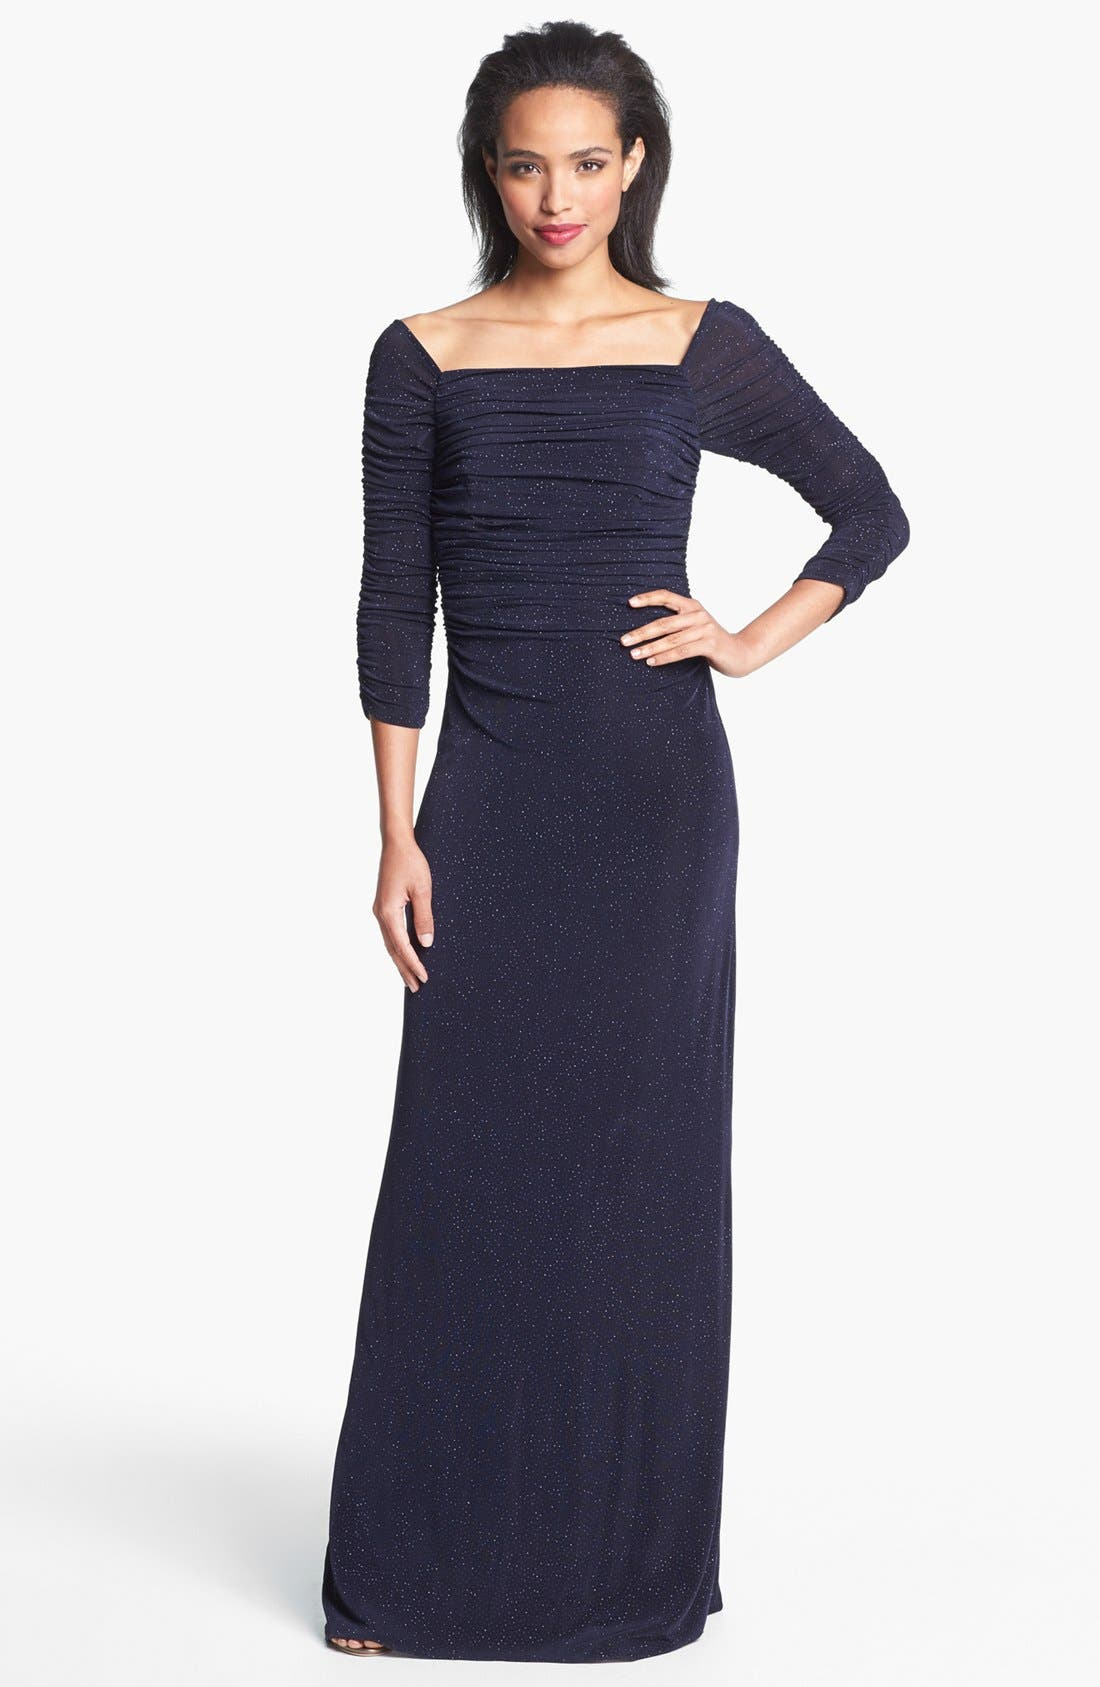 Main Image - Laundry by Shelli Segal Off Shoulder Glitzy Knit Gown